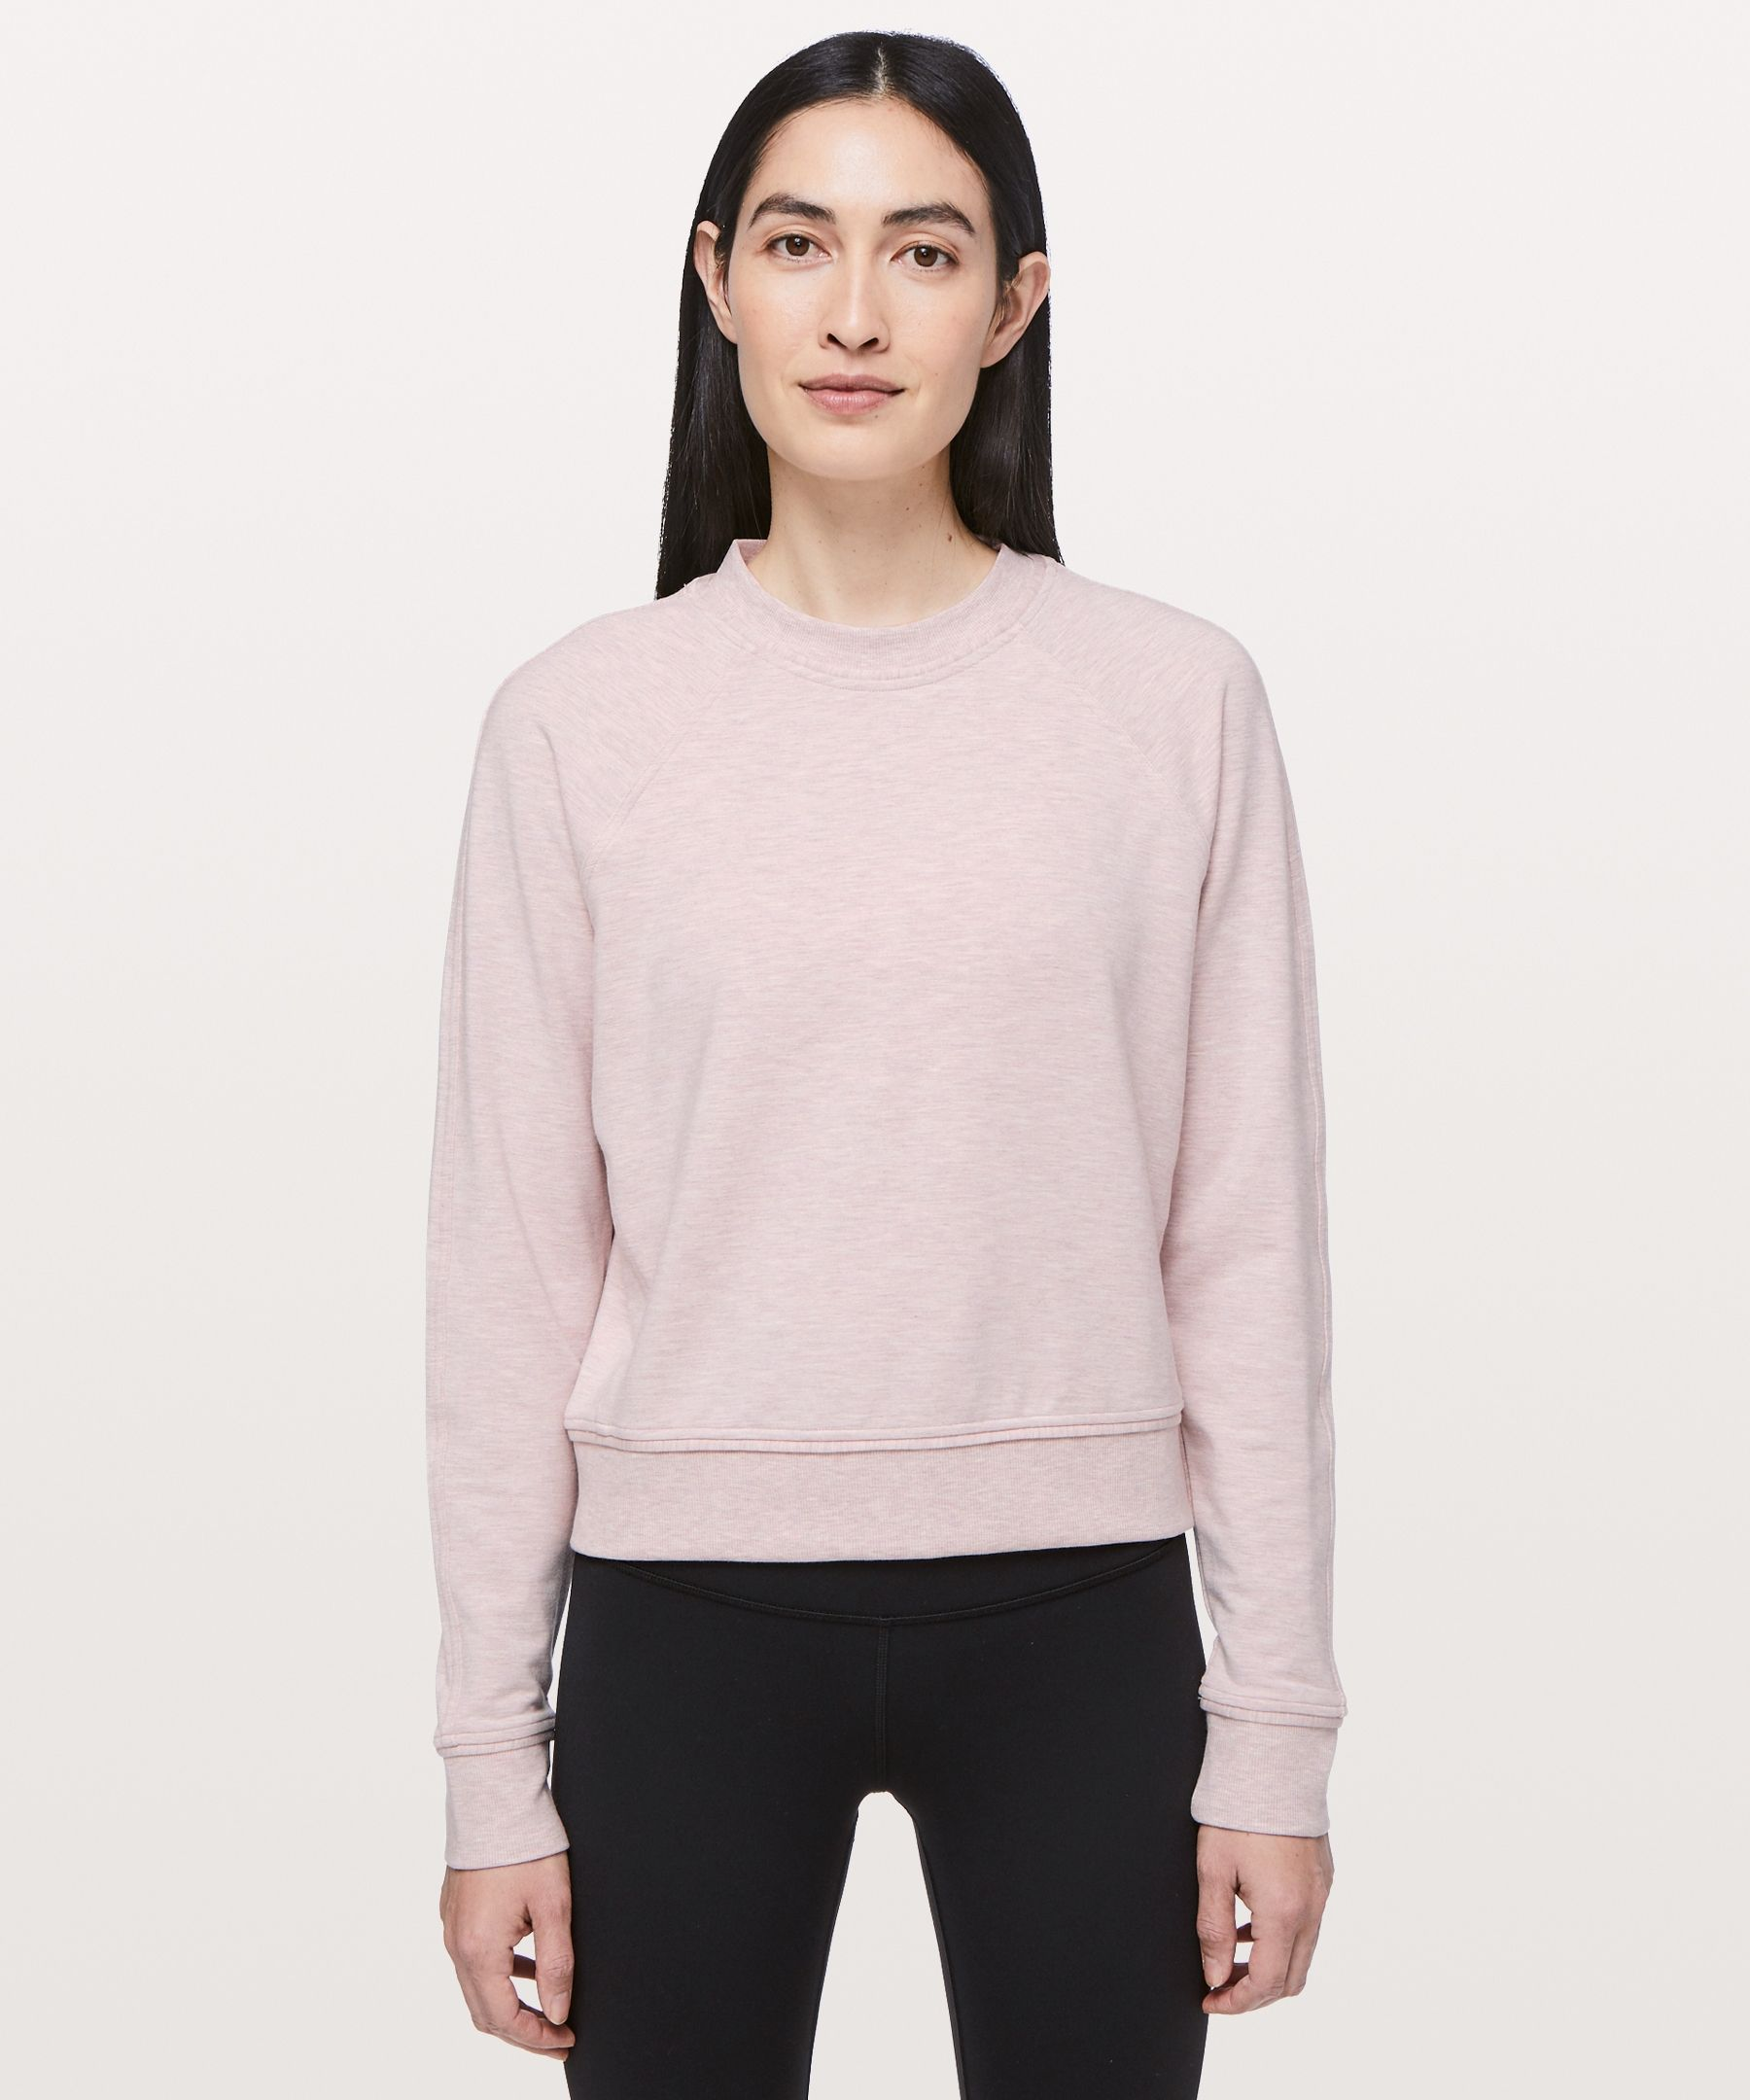 f818bf0f45 Close Comfort Crewneck - Simple. Versatile. Cool. This crew neck goes with  everything